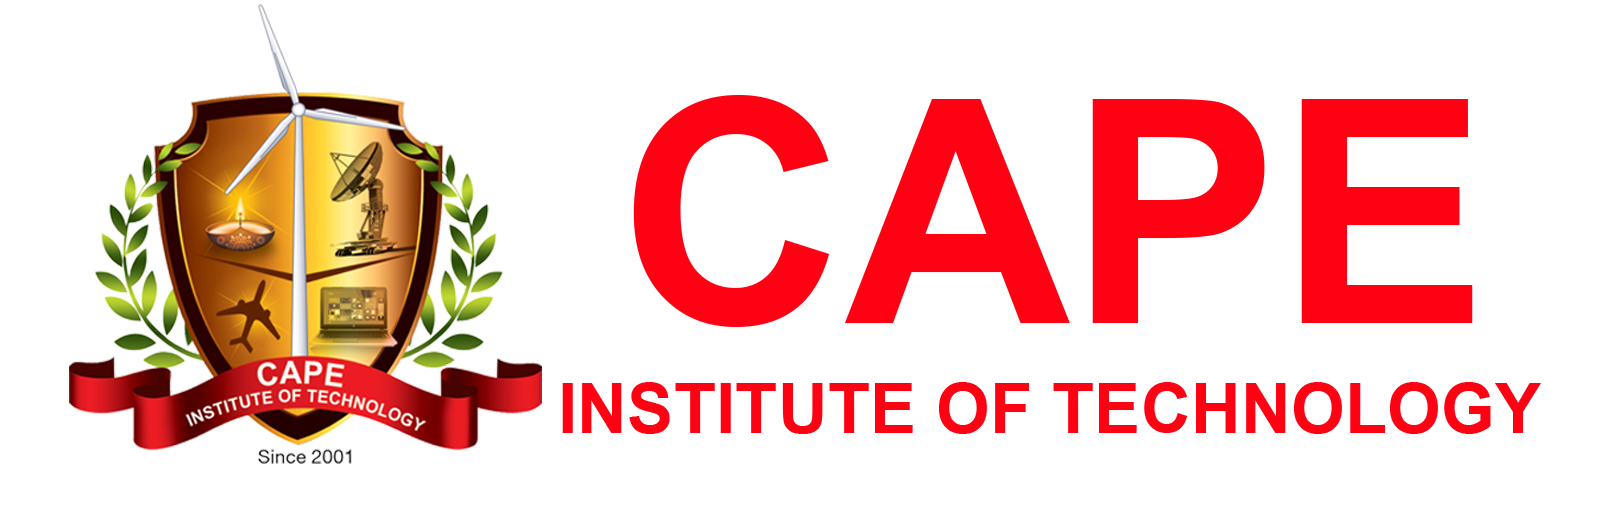 Cape Institute of Technology